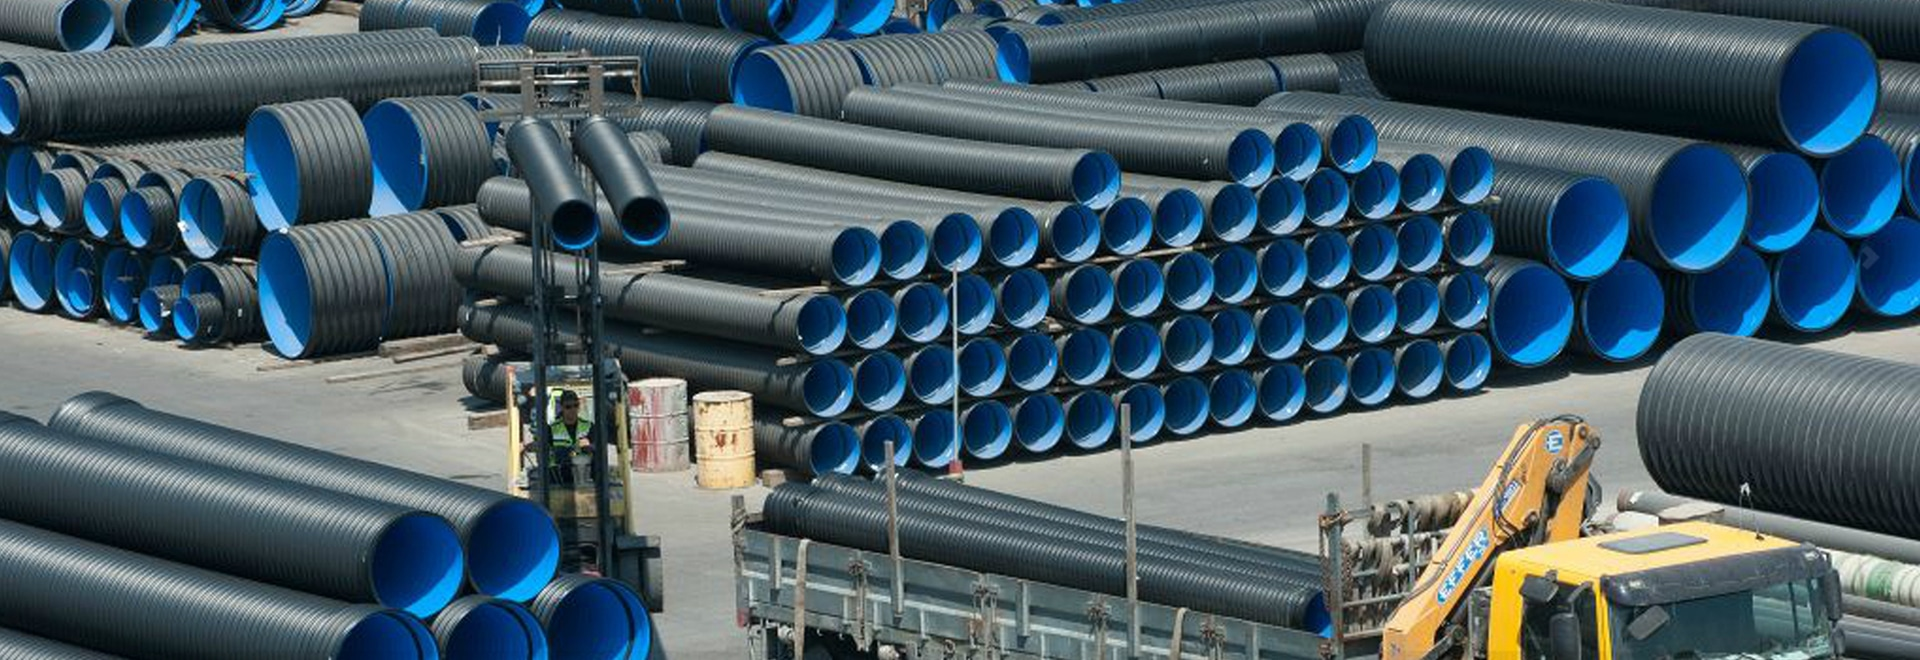 Paladeri SPA Steel Reinforced Corrugated Pipe